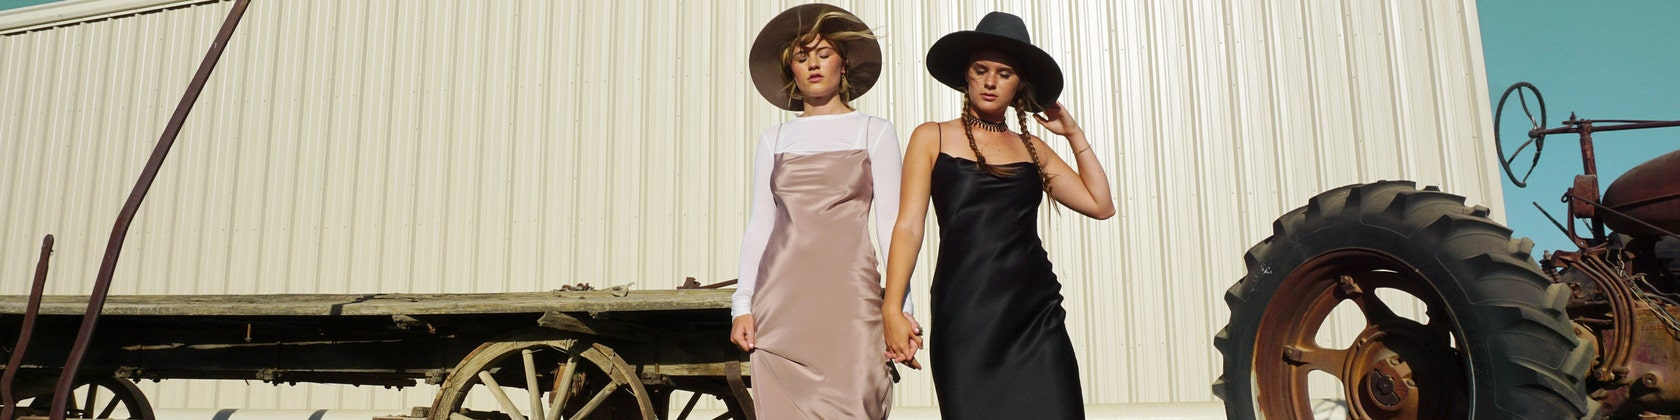 49acd8936450 ORIGINAL SUSTAINABLE DESIGNS BRIDESMAIDS DRESSES by CloudHunterCo